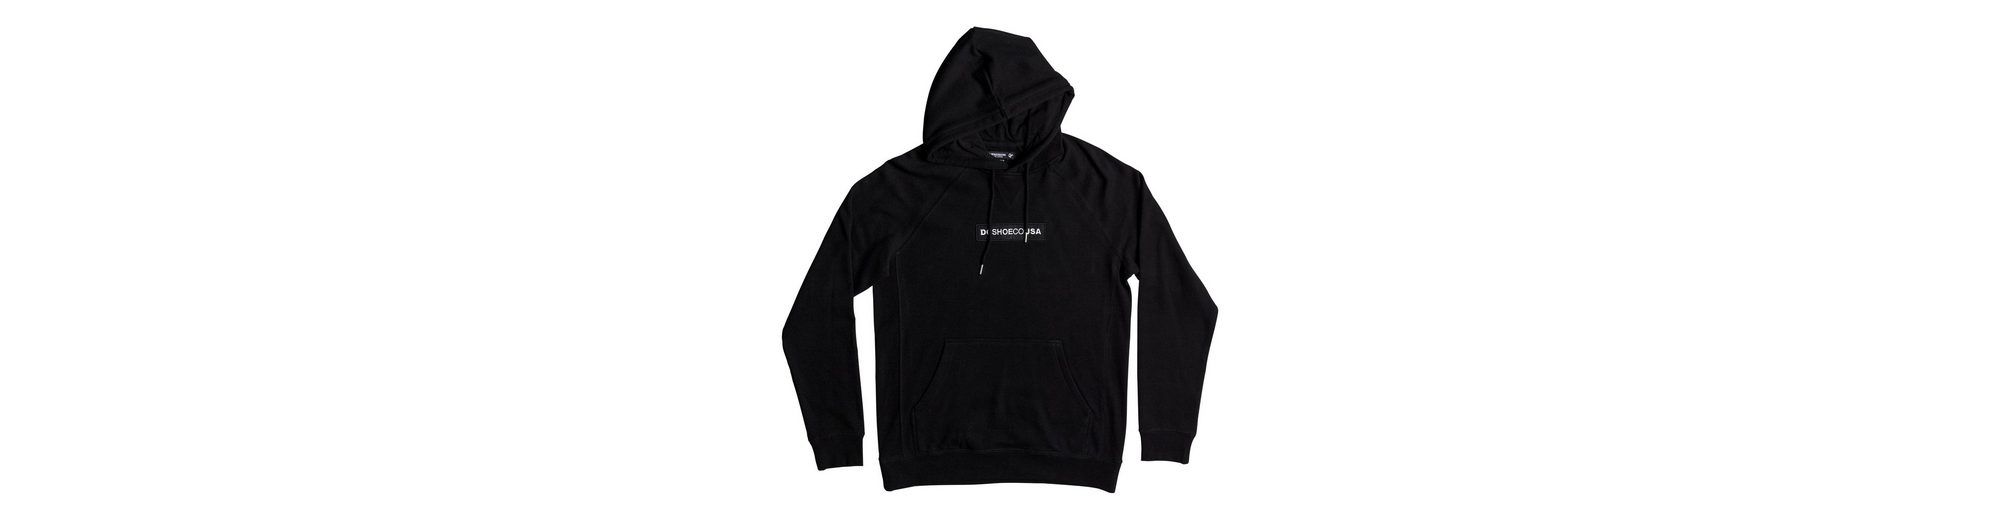 DC Shoes Sweatshirt Embroidered